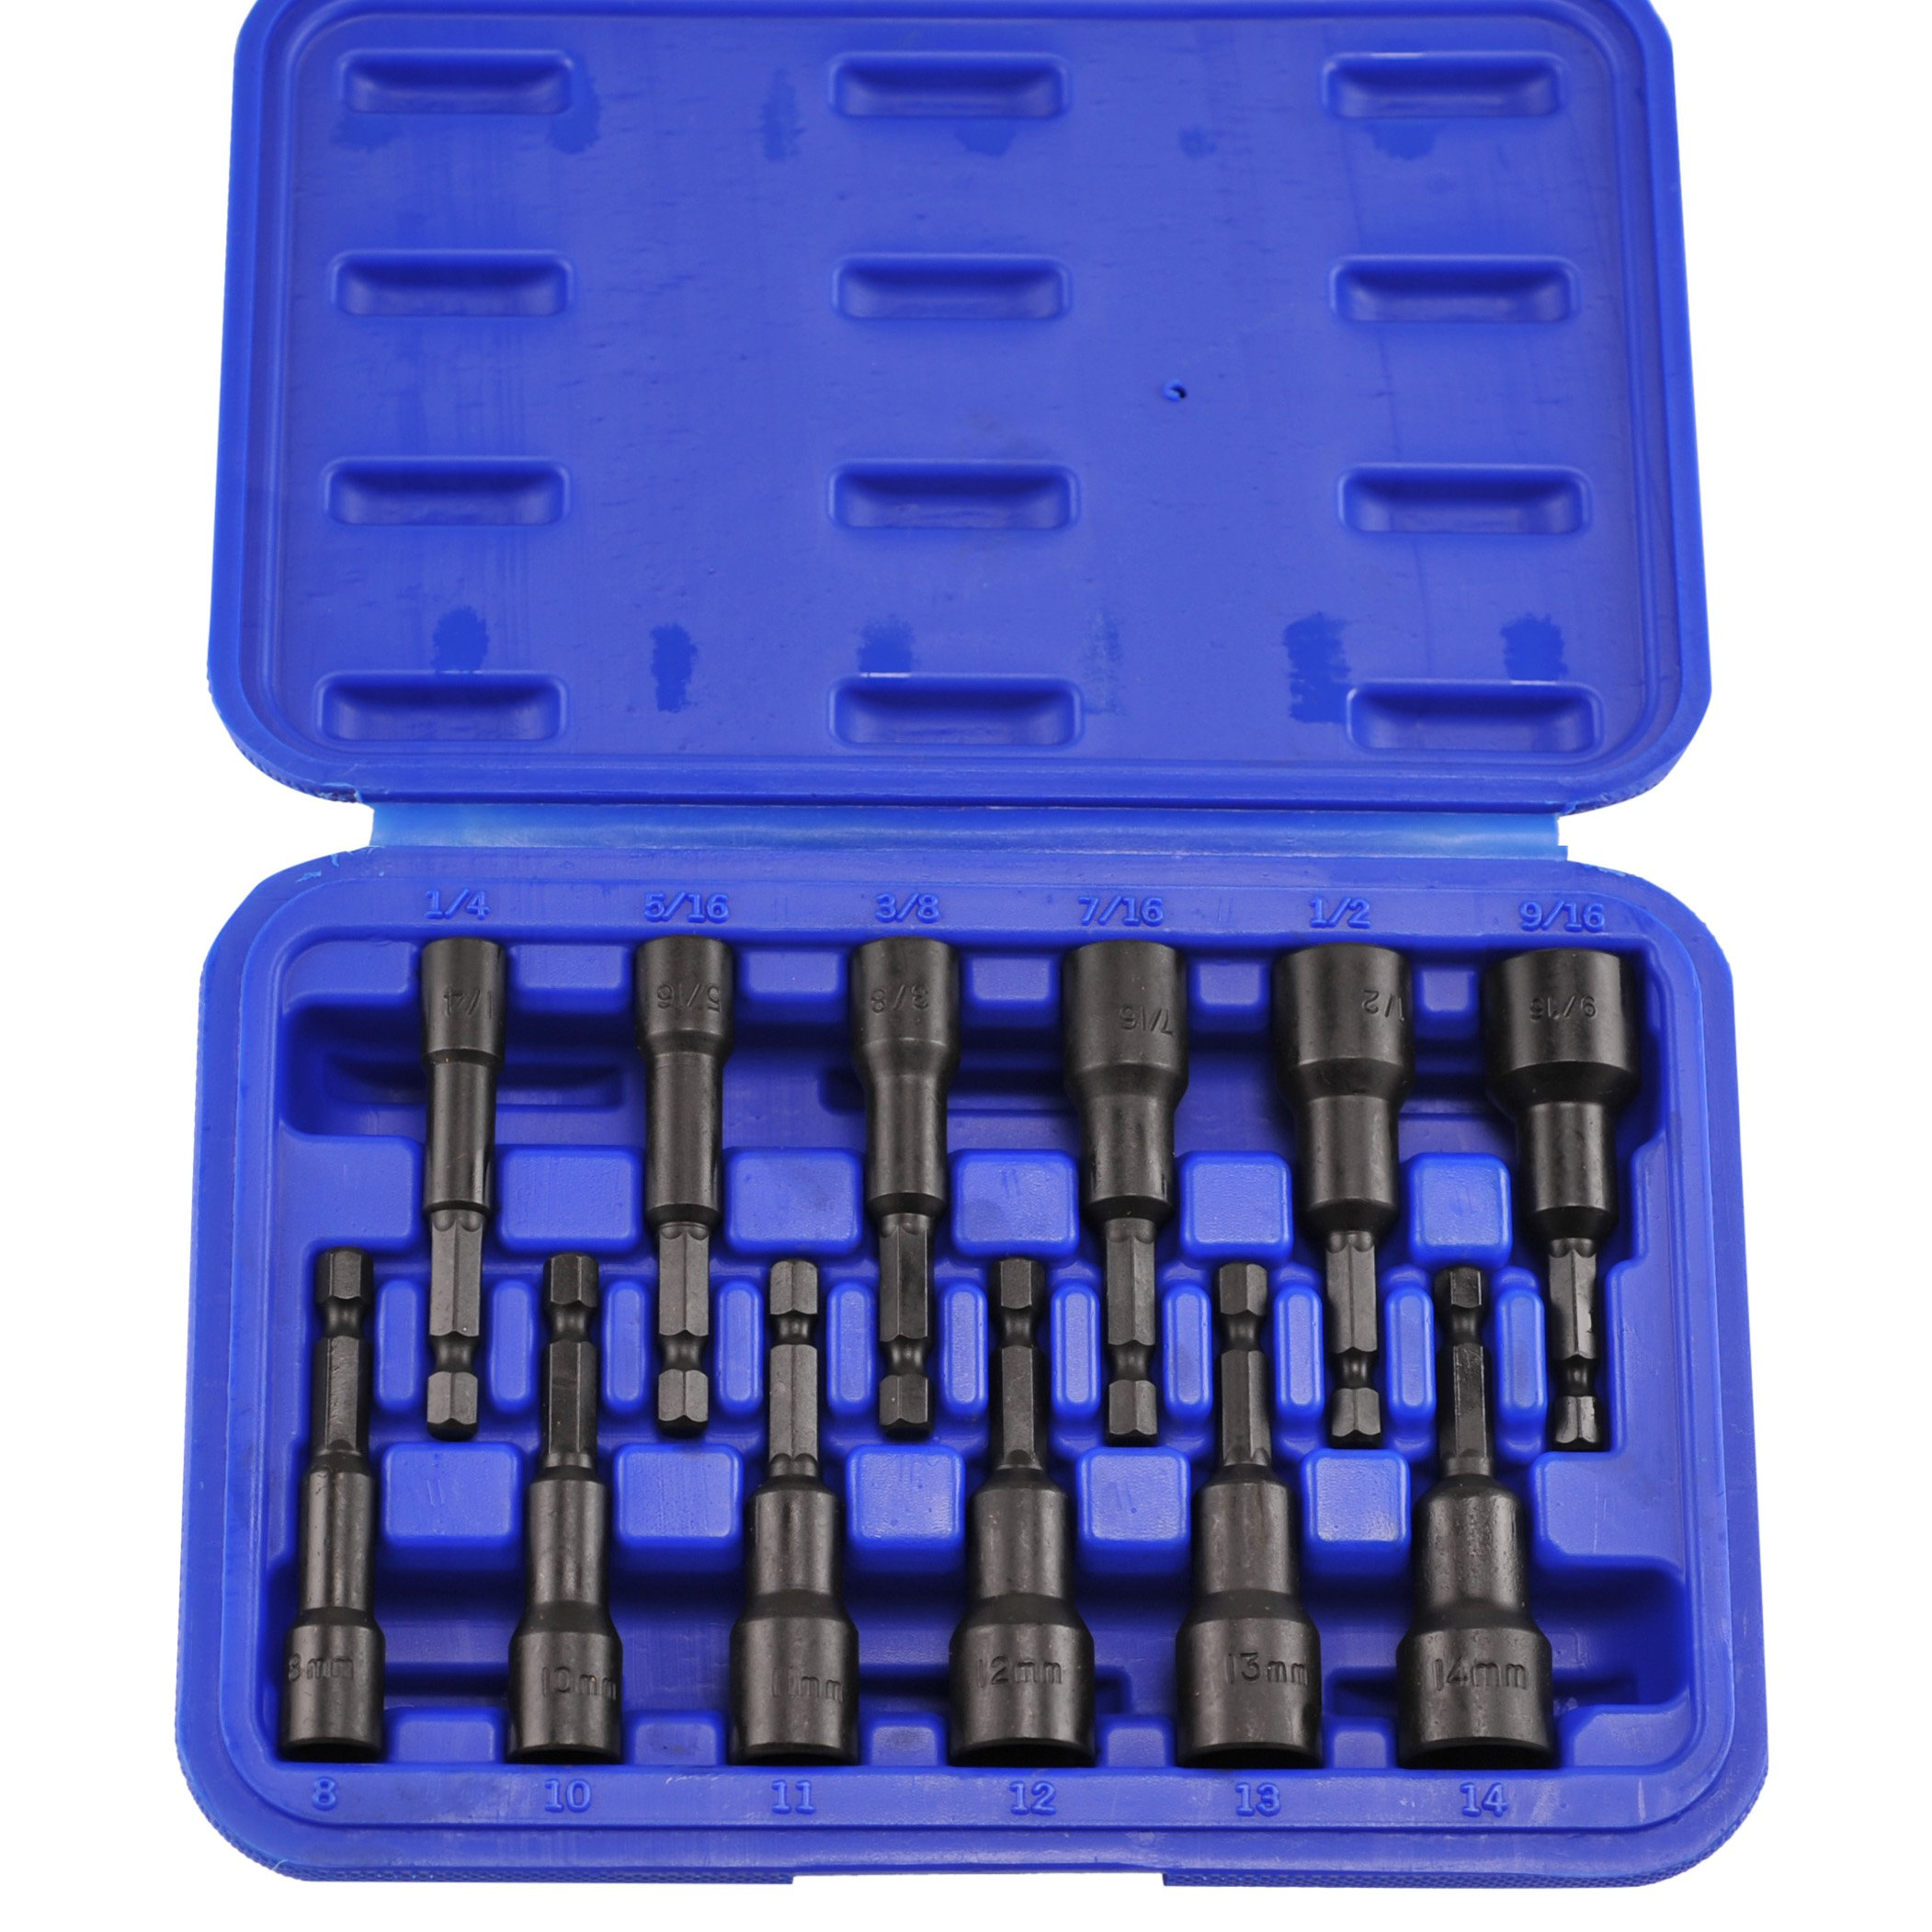 Neiko 10250A Magnetic Hex Nut Driver Master Kit, Cr-V Steel | 1/4'' Quick-Change Hex Shank | SAE & Metric | 12-Piece Set by Neiko